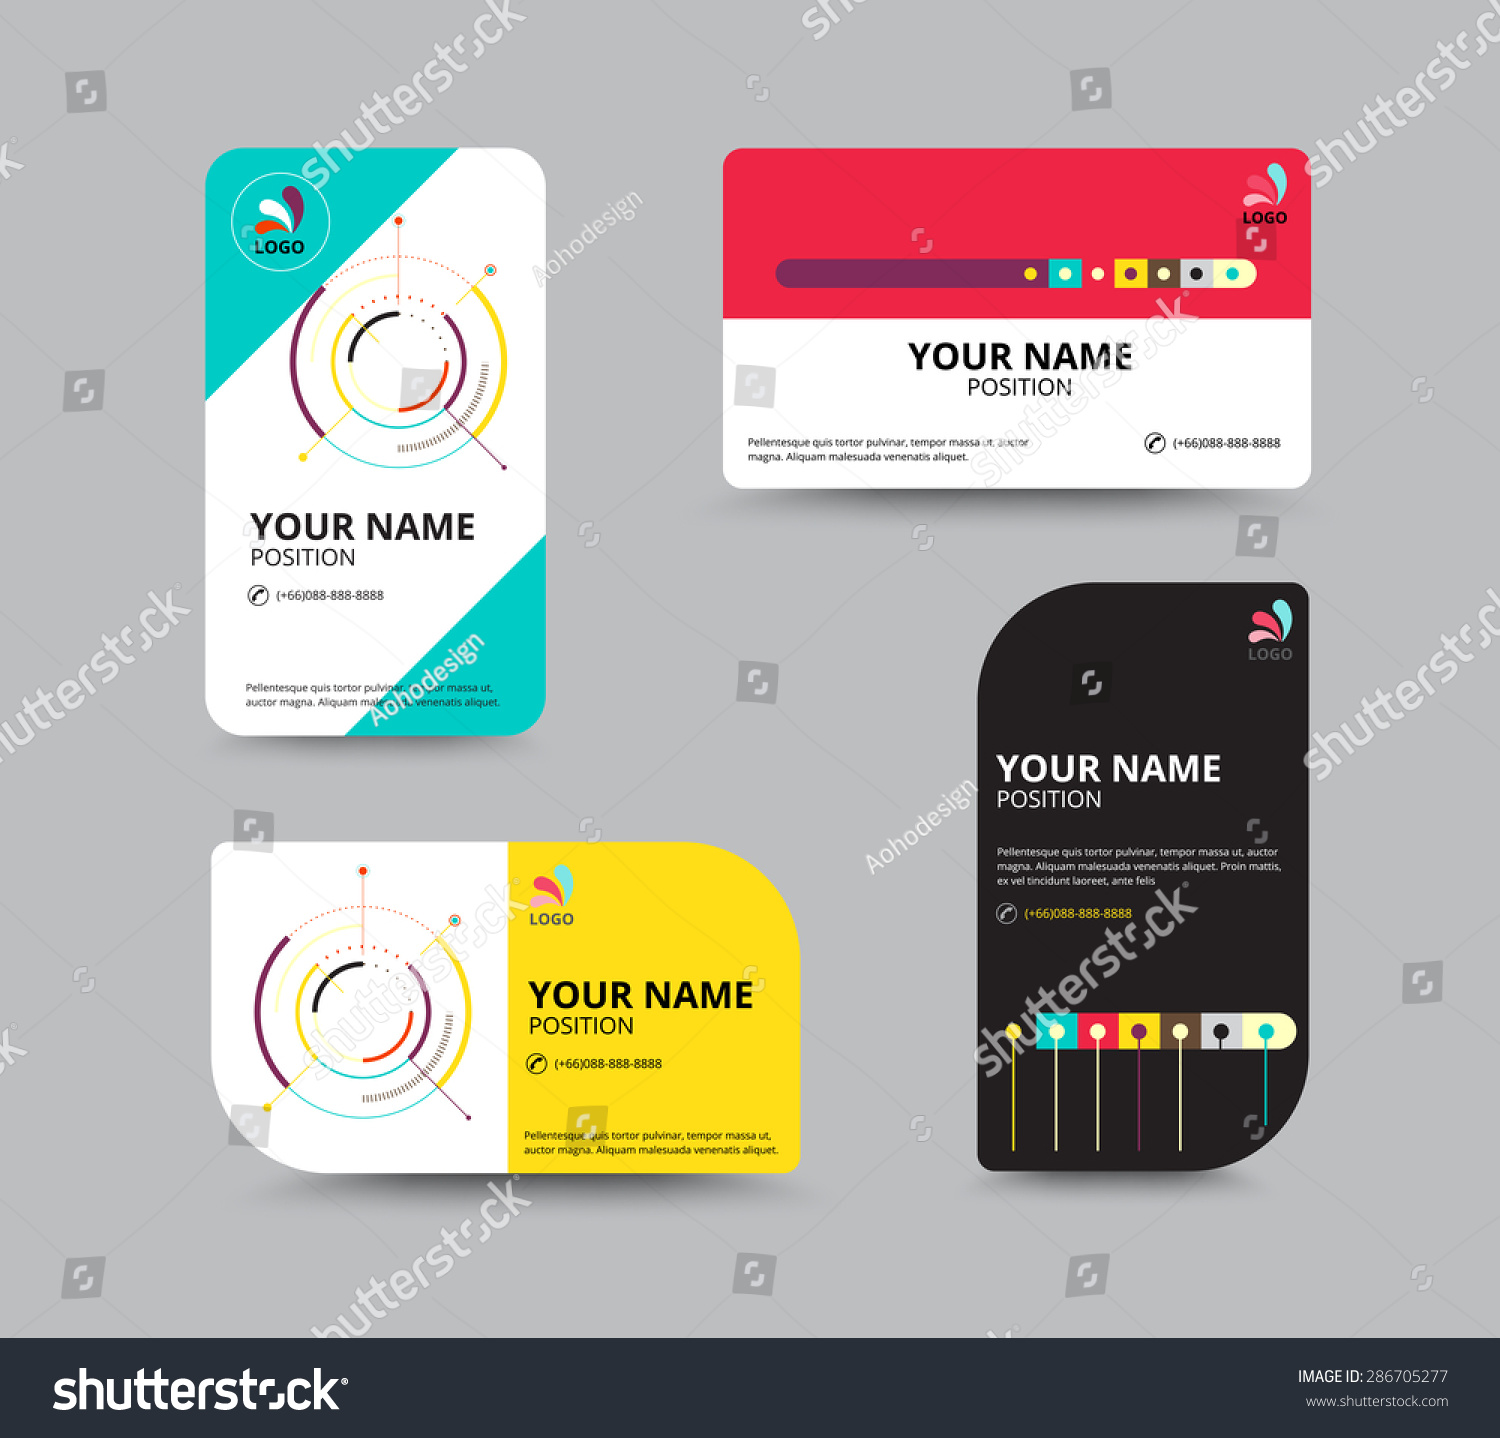 Business Card Design Template Leaflet Business Stock Vector ...